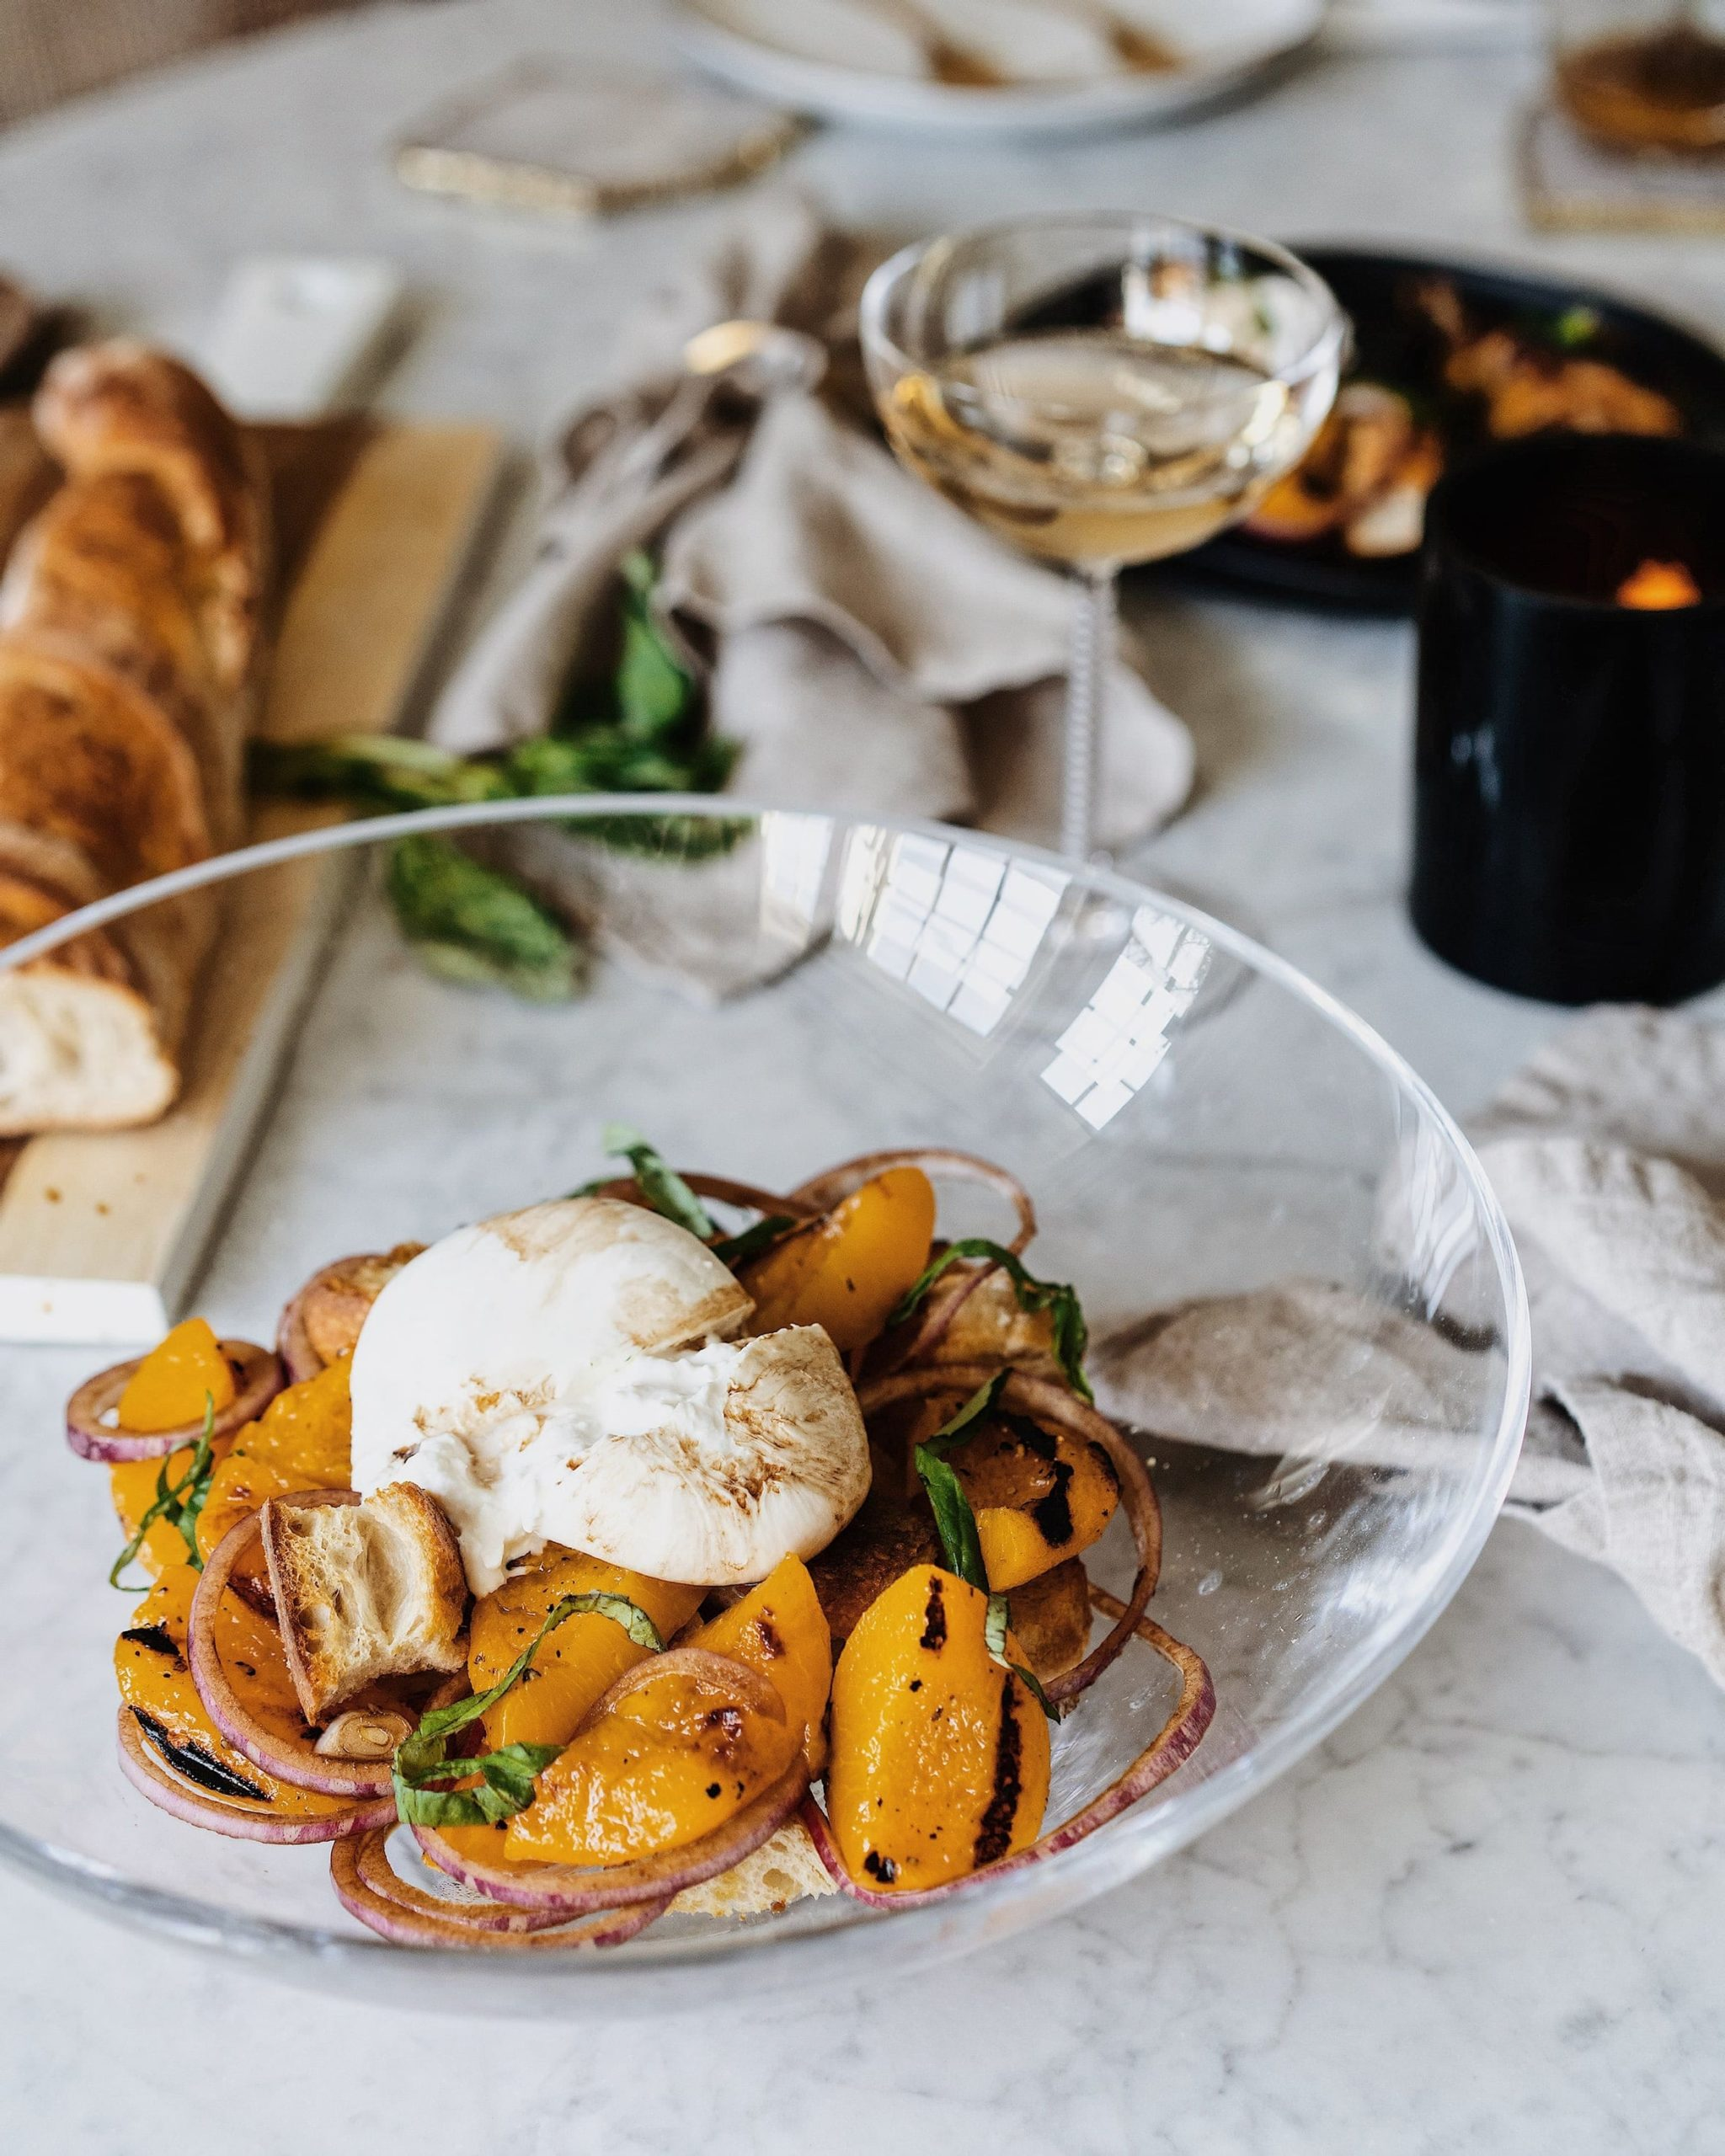 Peach and Burrata Salad